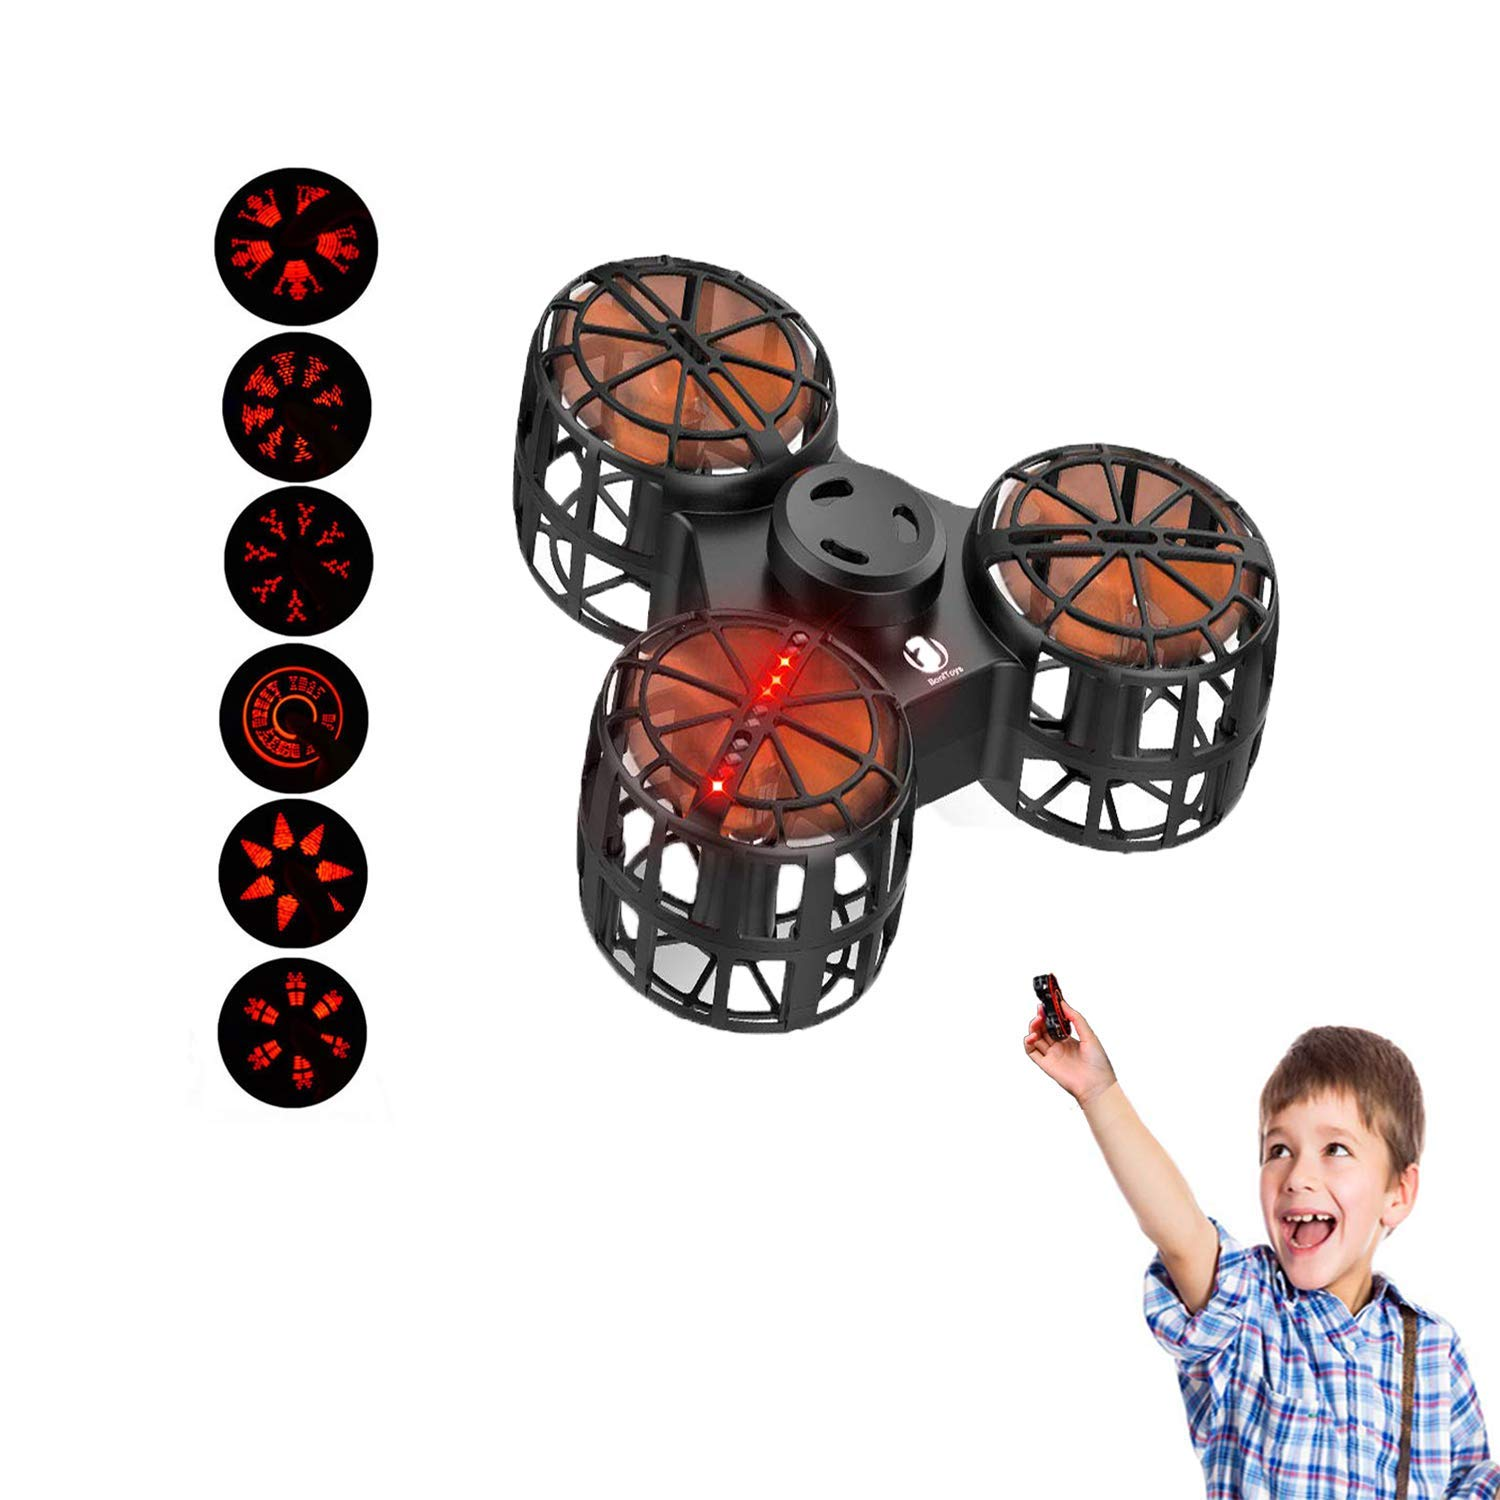 EliveBuy Anti-Anxiety Fidget Toy, Flying Fidget Spinner, Mini Drone with 6 LED Pattern, USB Rechargeable, Children's Day Gift by EliveBuy